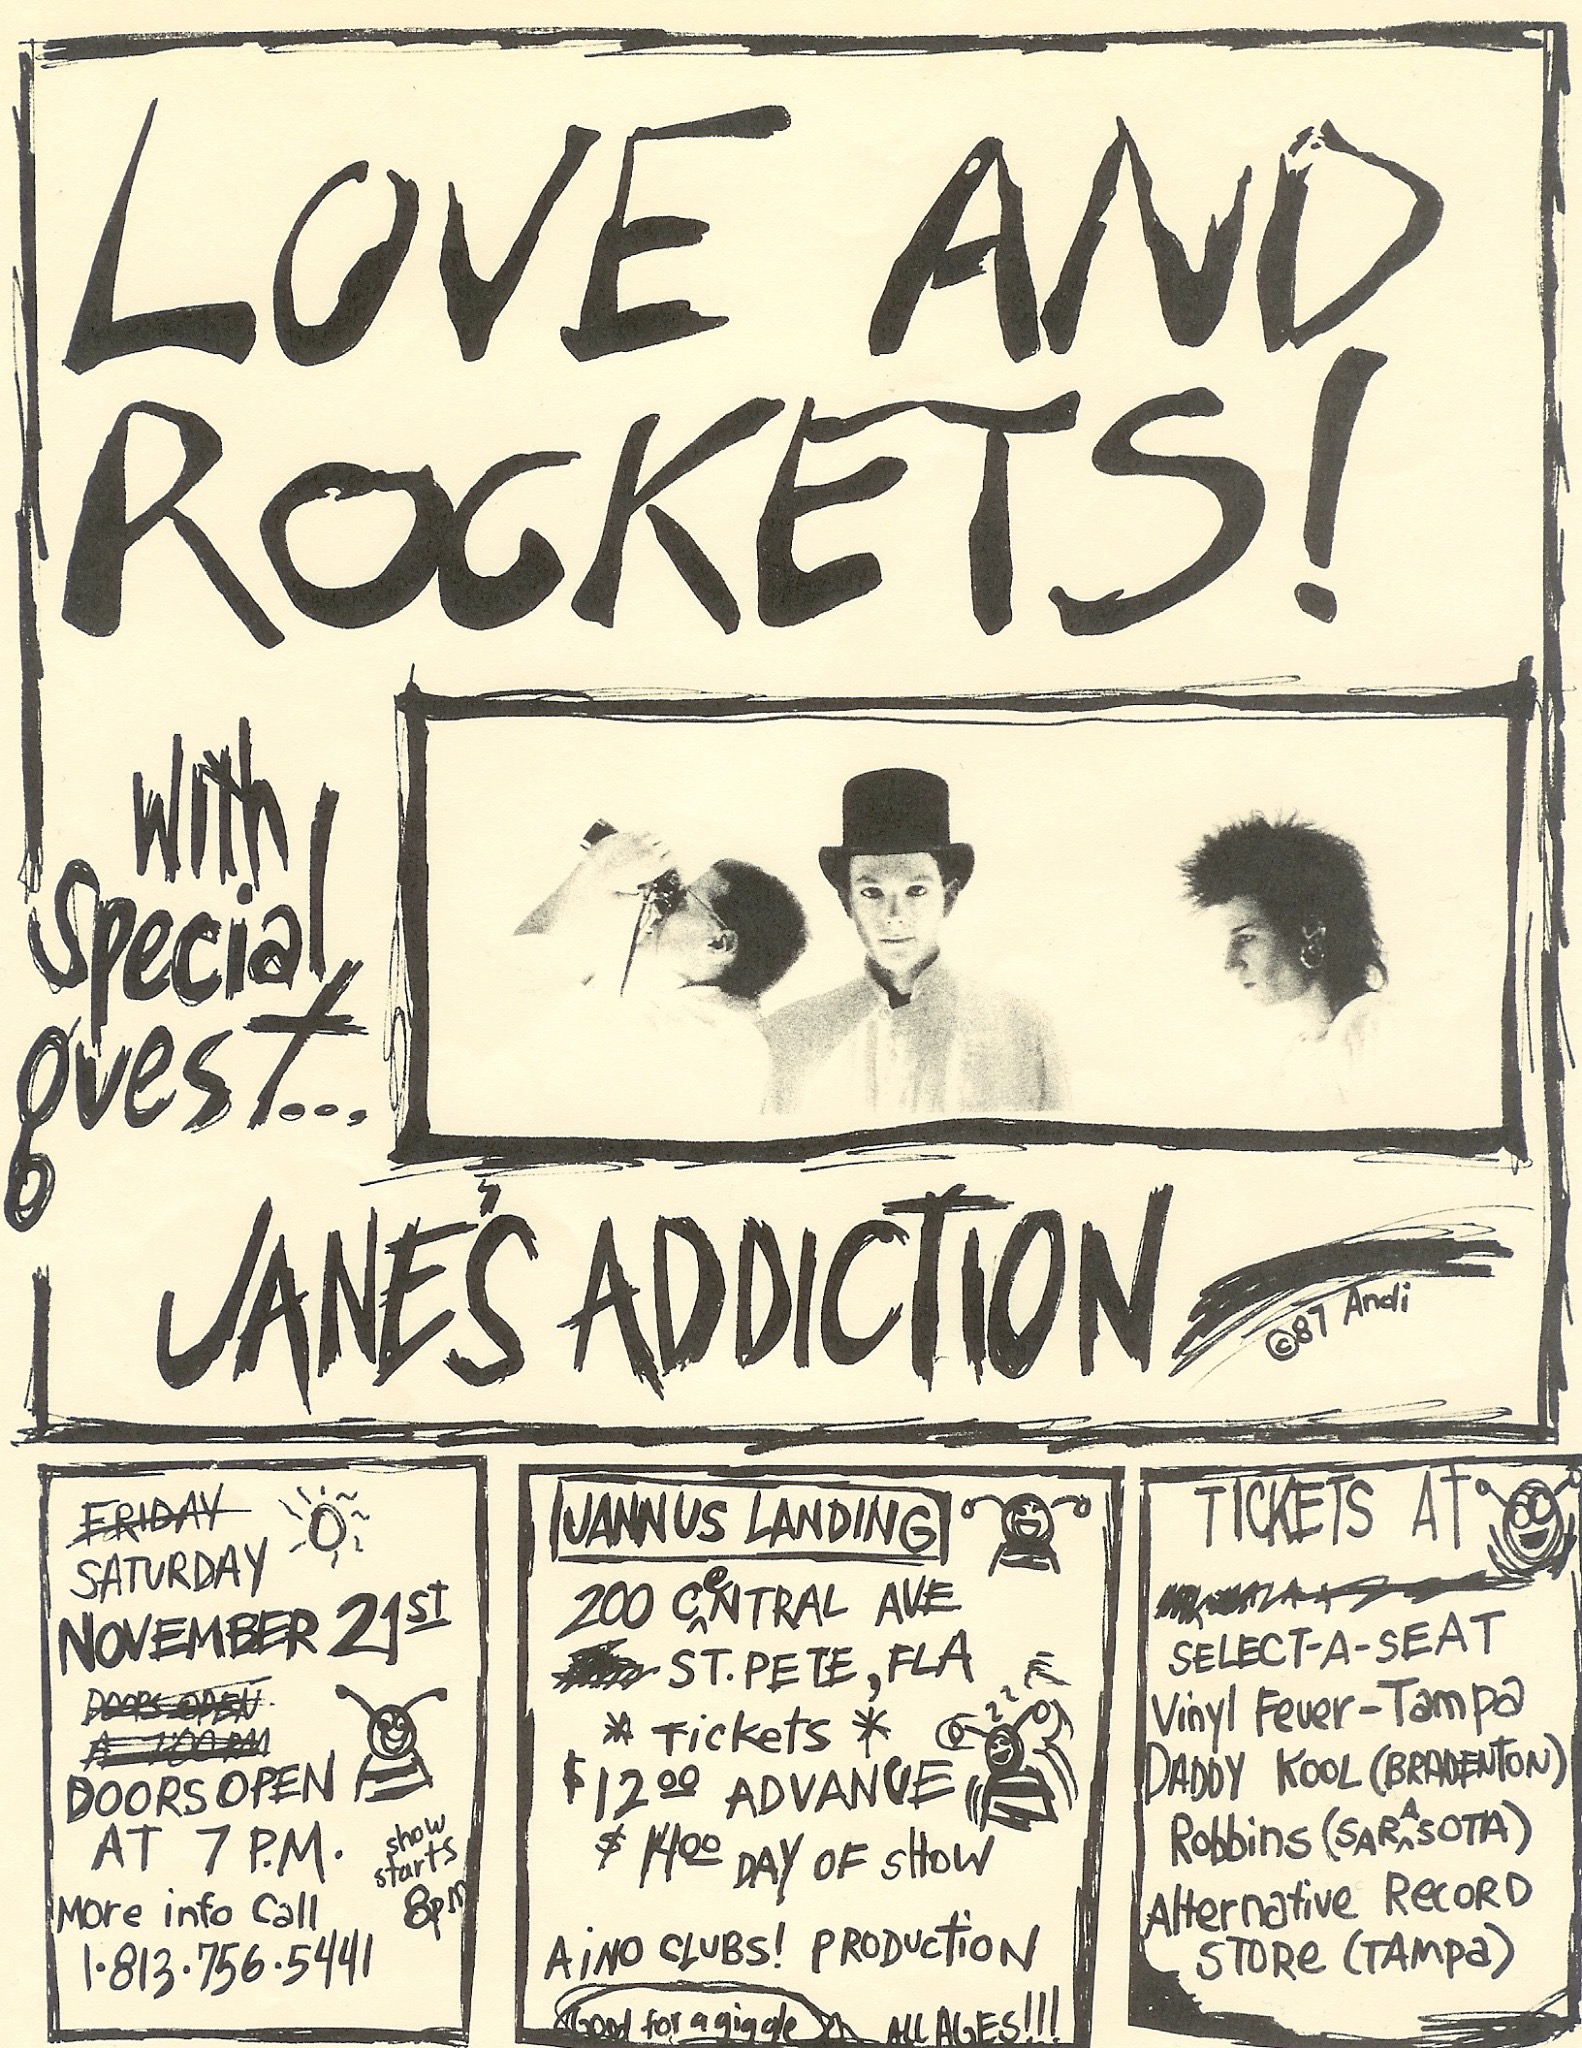 Janesaddiction Org Tour Info Jane S Addiction November